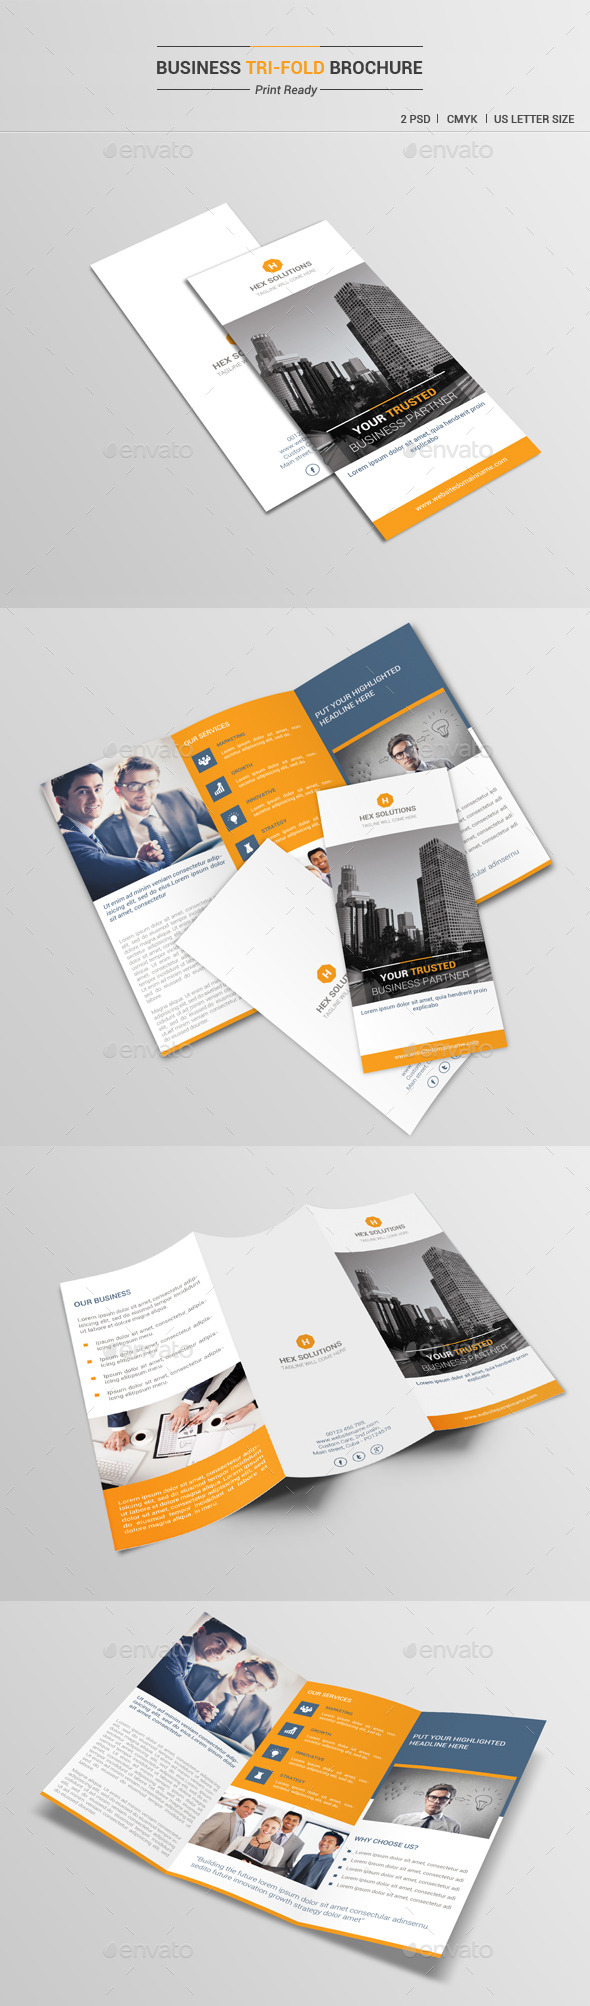 Business Tri-Fold Brochure V1 - Corporate Brochures